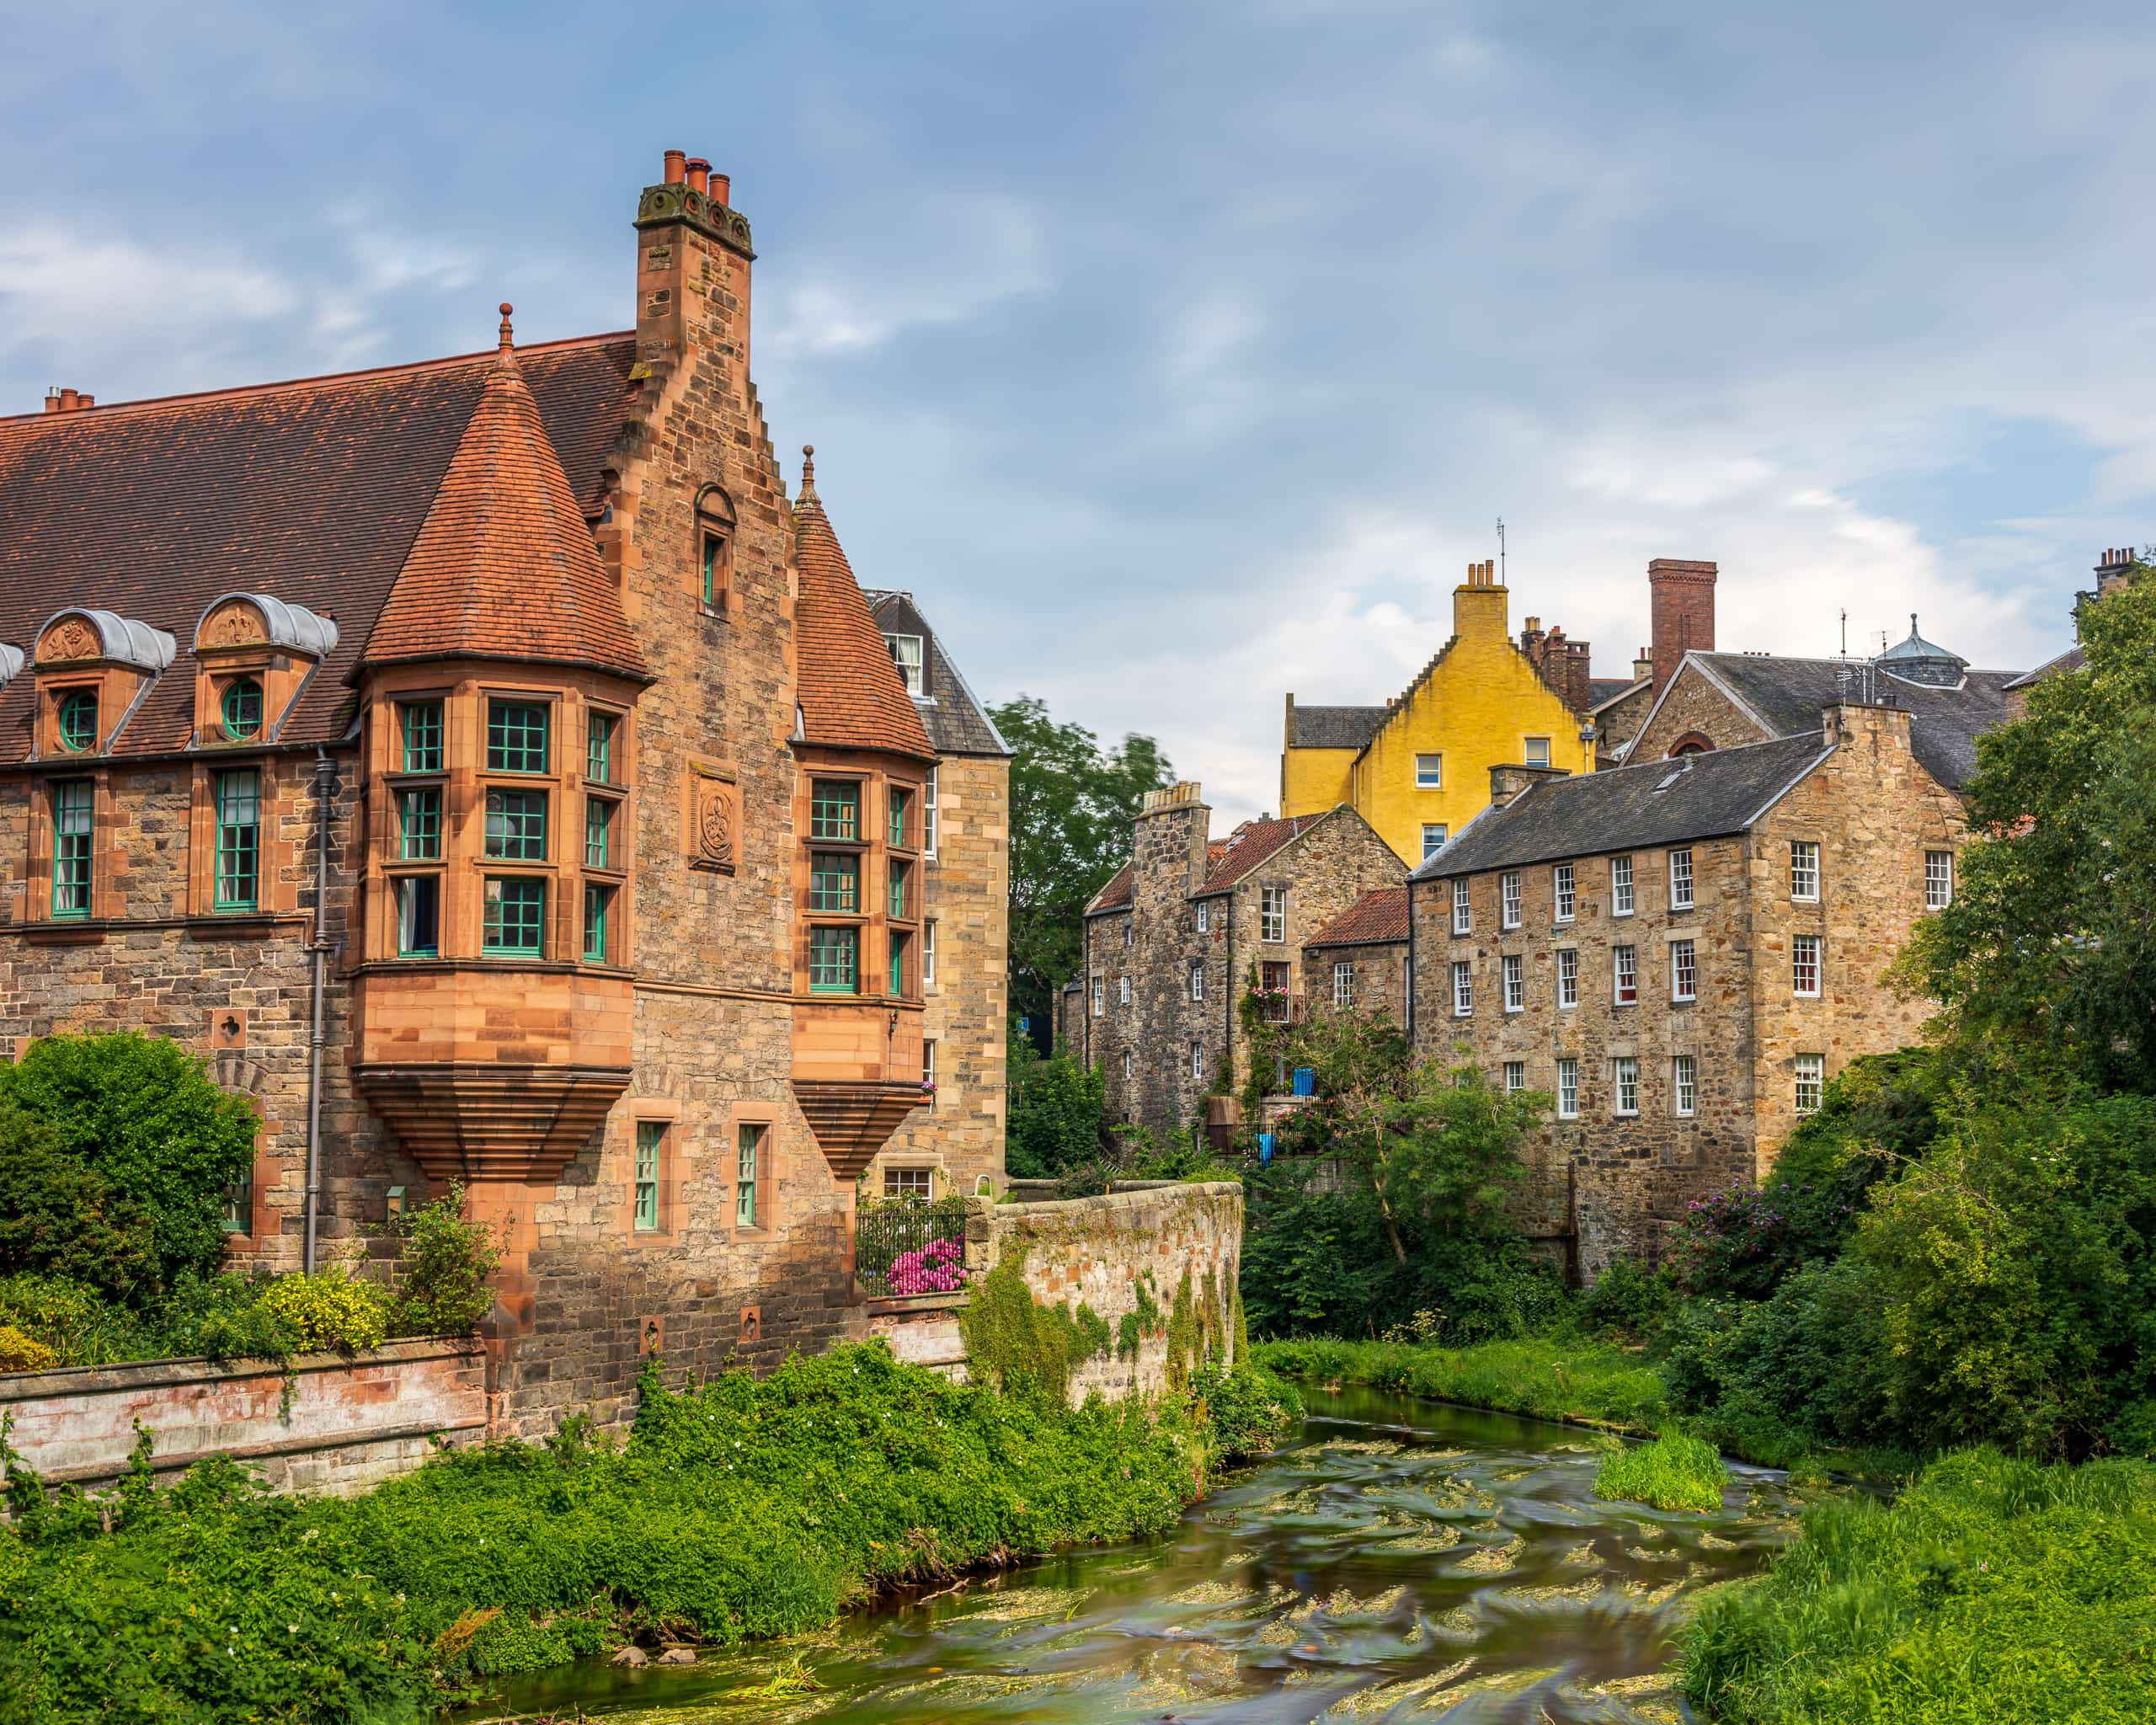 Dean Village | f/8 10sec ISO-100 35mm  | ILCE-7RM3